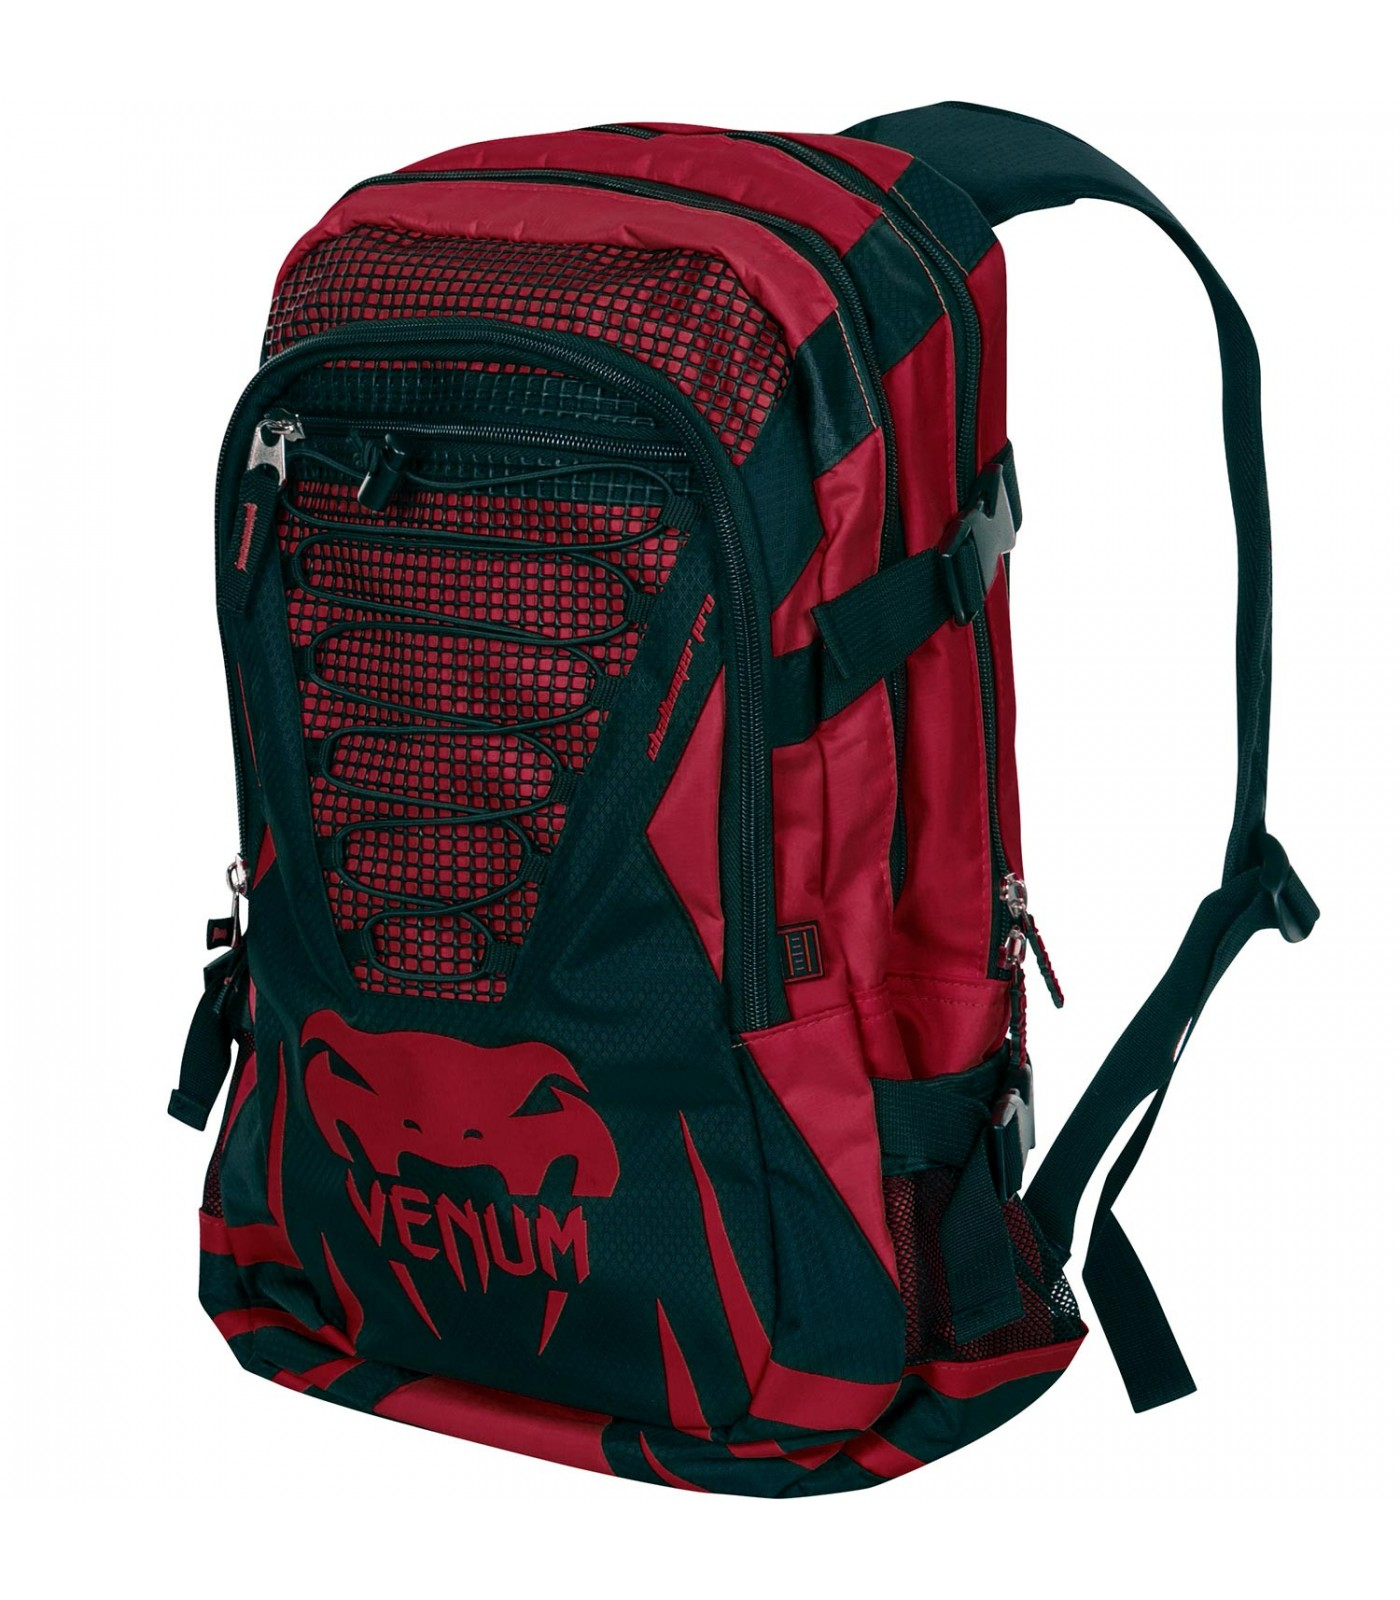 Раница - Venum Challenger Pro Backpack / Red​